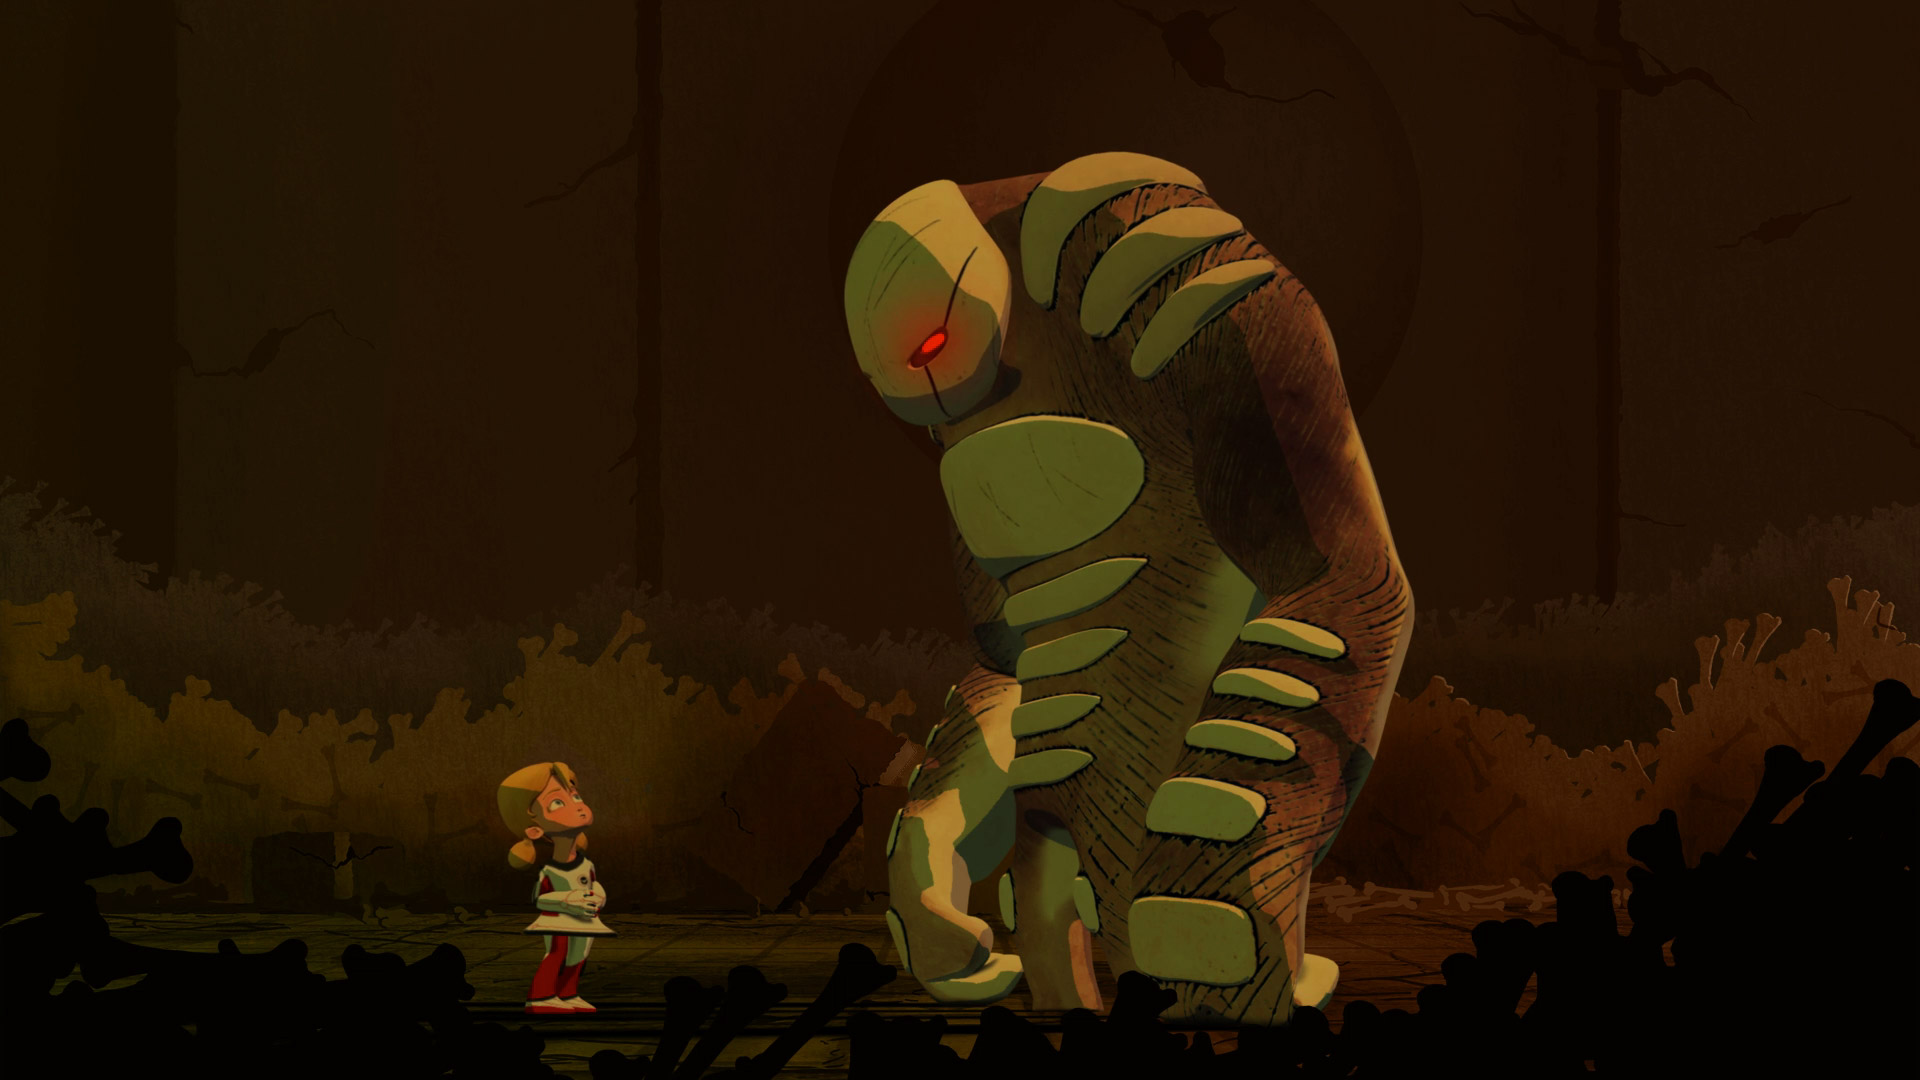 awesome-sci-fi-animated-short-the-guardians-tale-07.jpg